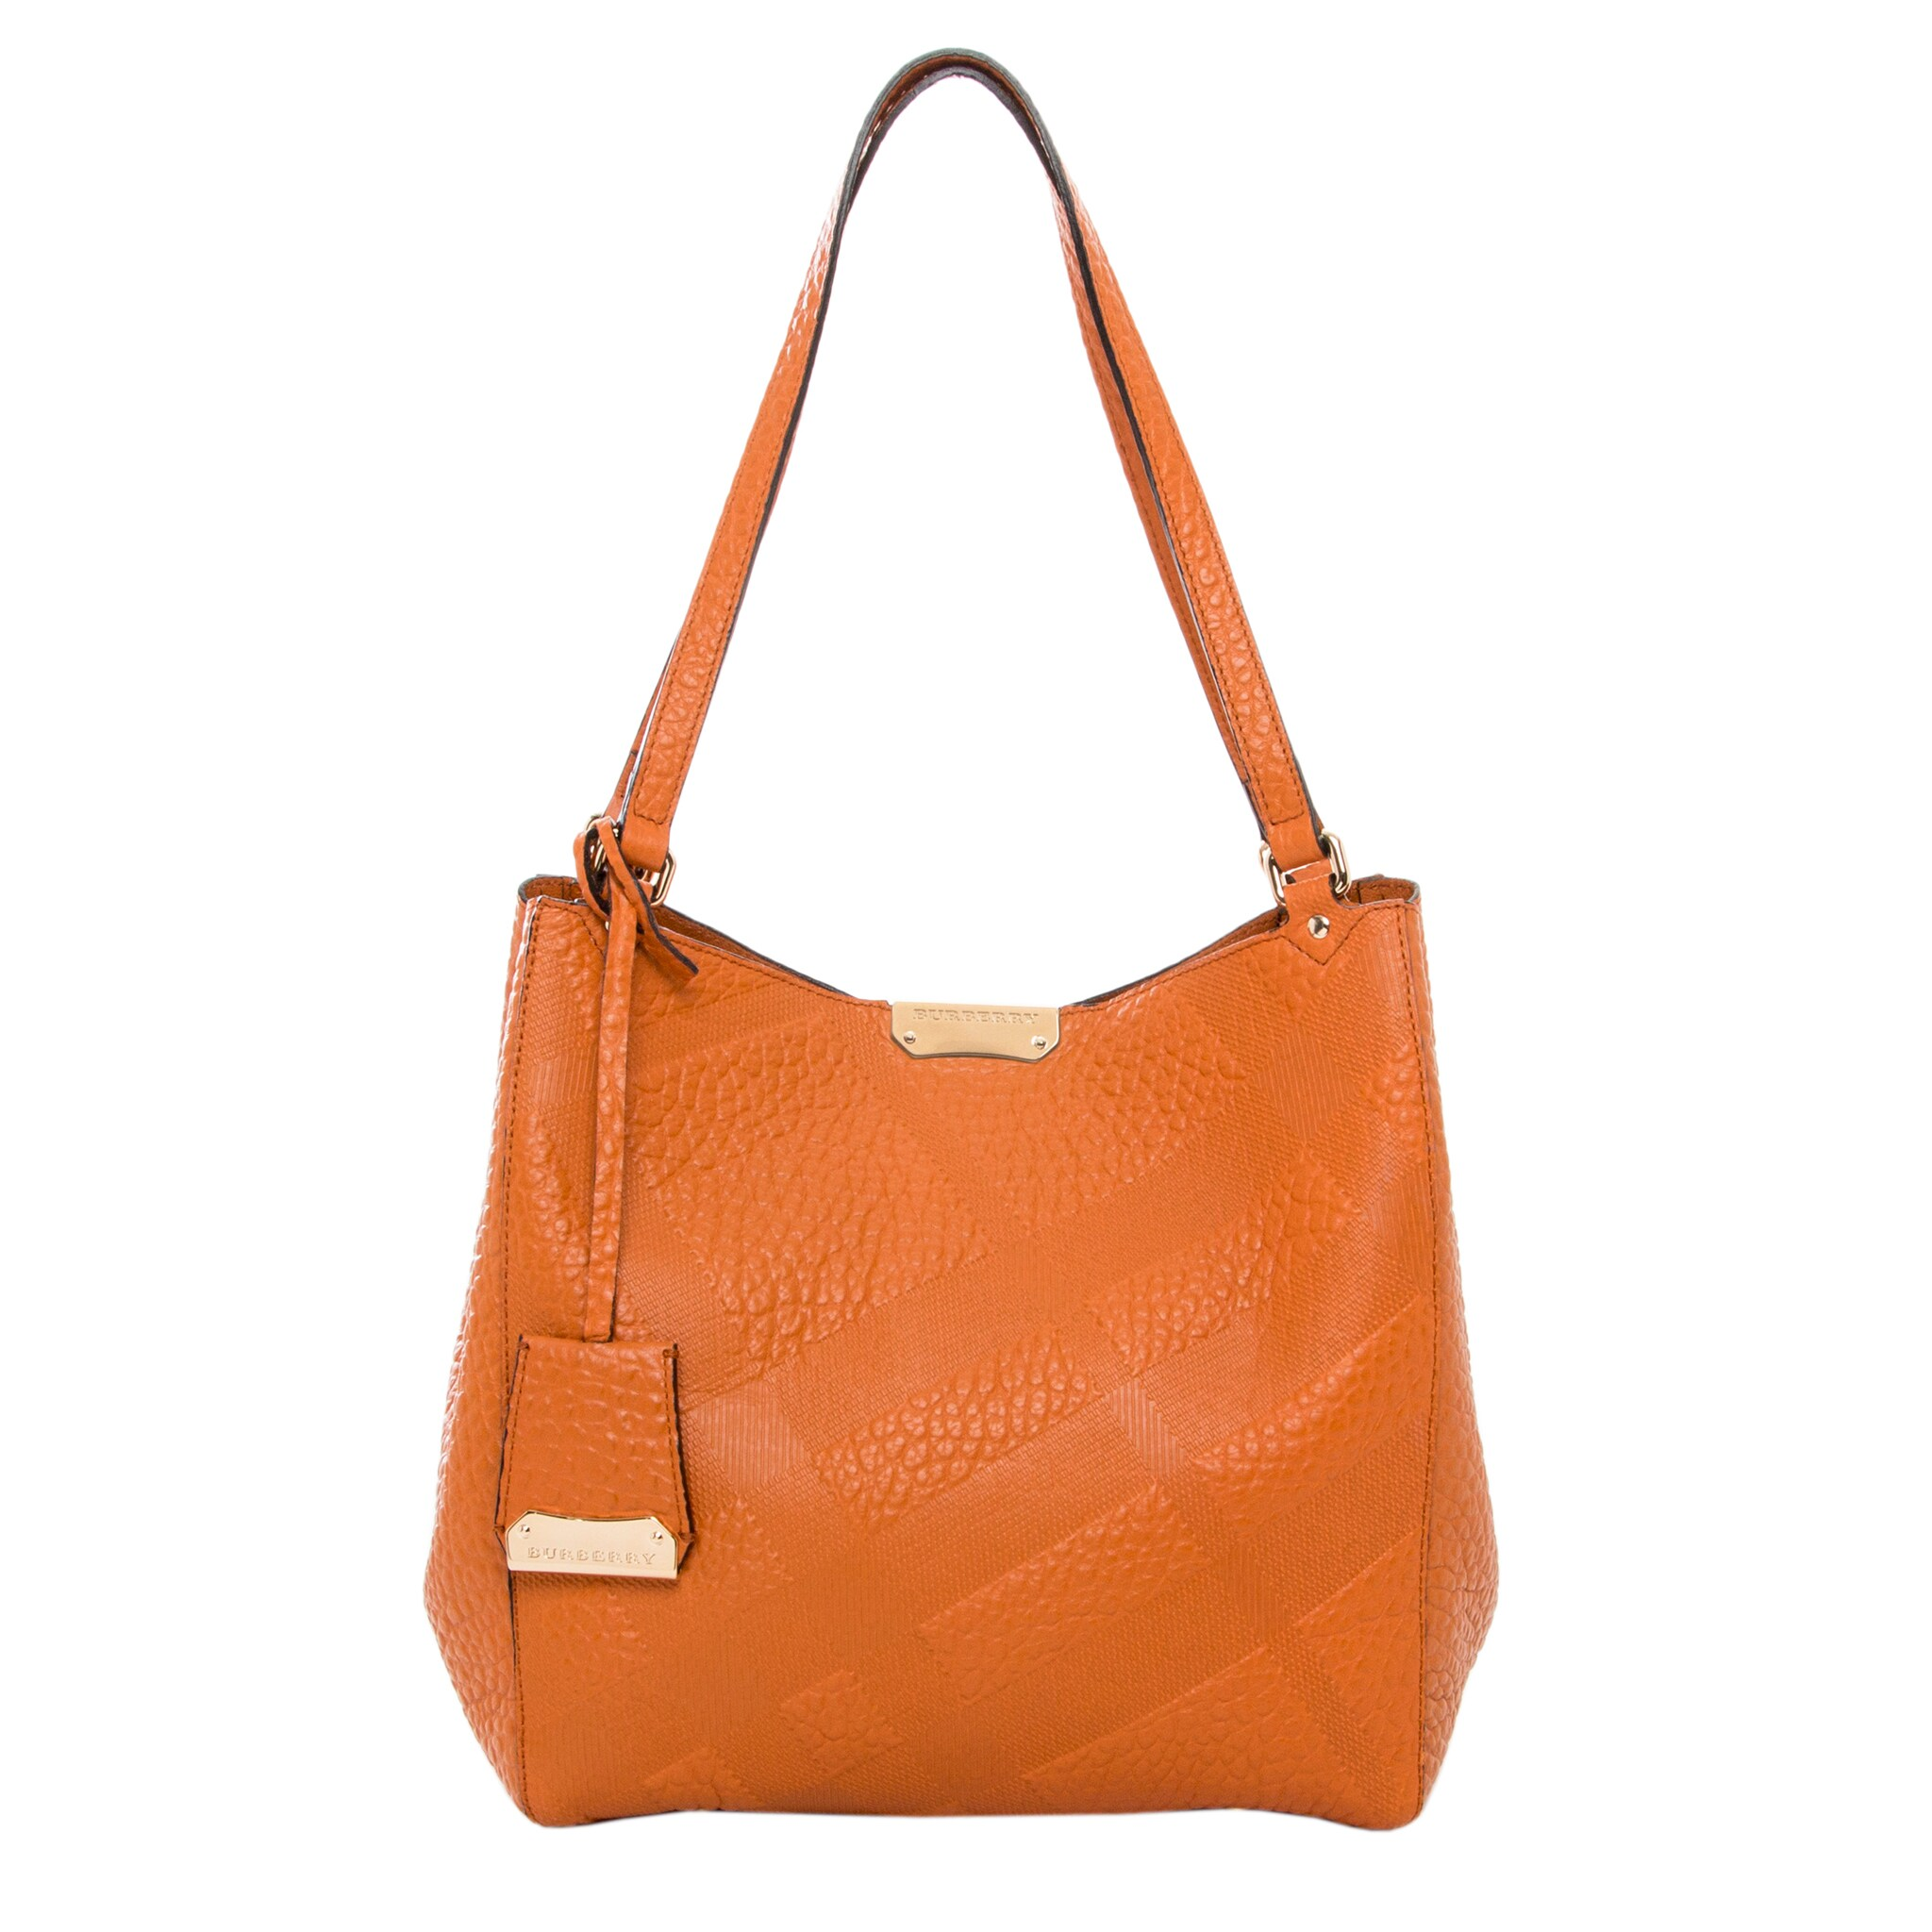 8fdcb90a6785 Shop Burberry Small  Canter  Burnt Orange Embossed Leather Tote - Free  Shipping Today - Overstock.com - 9728799